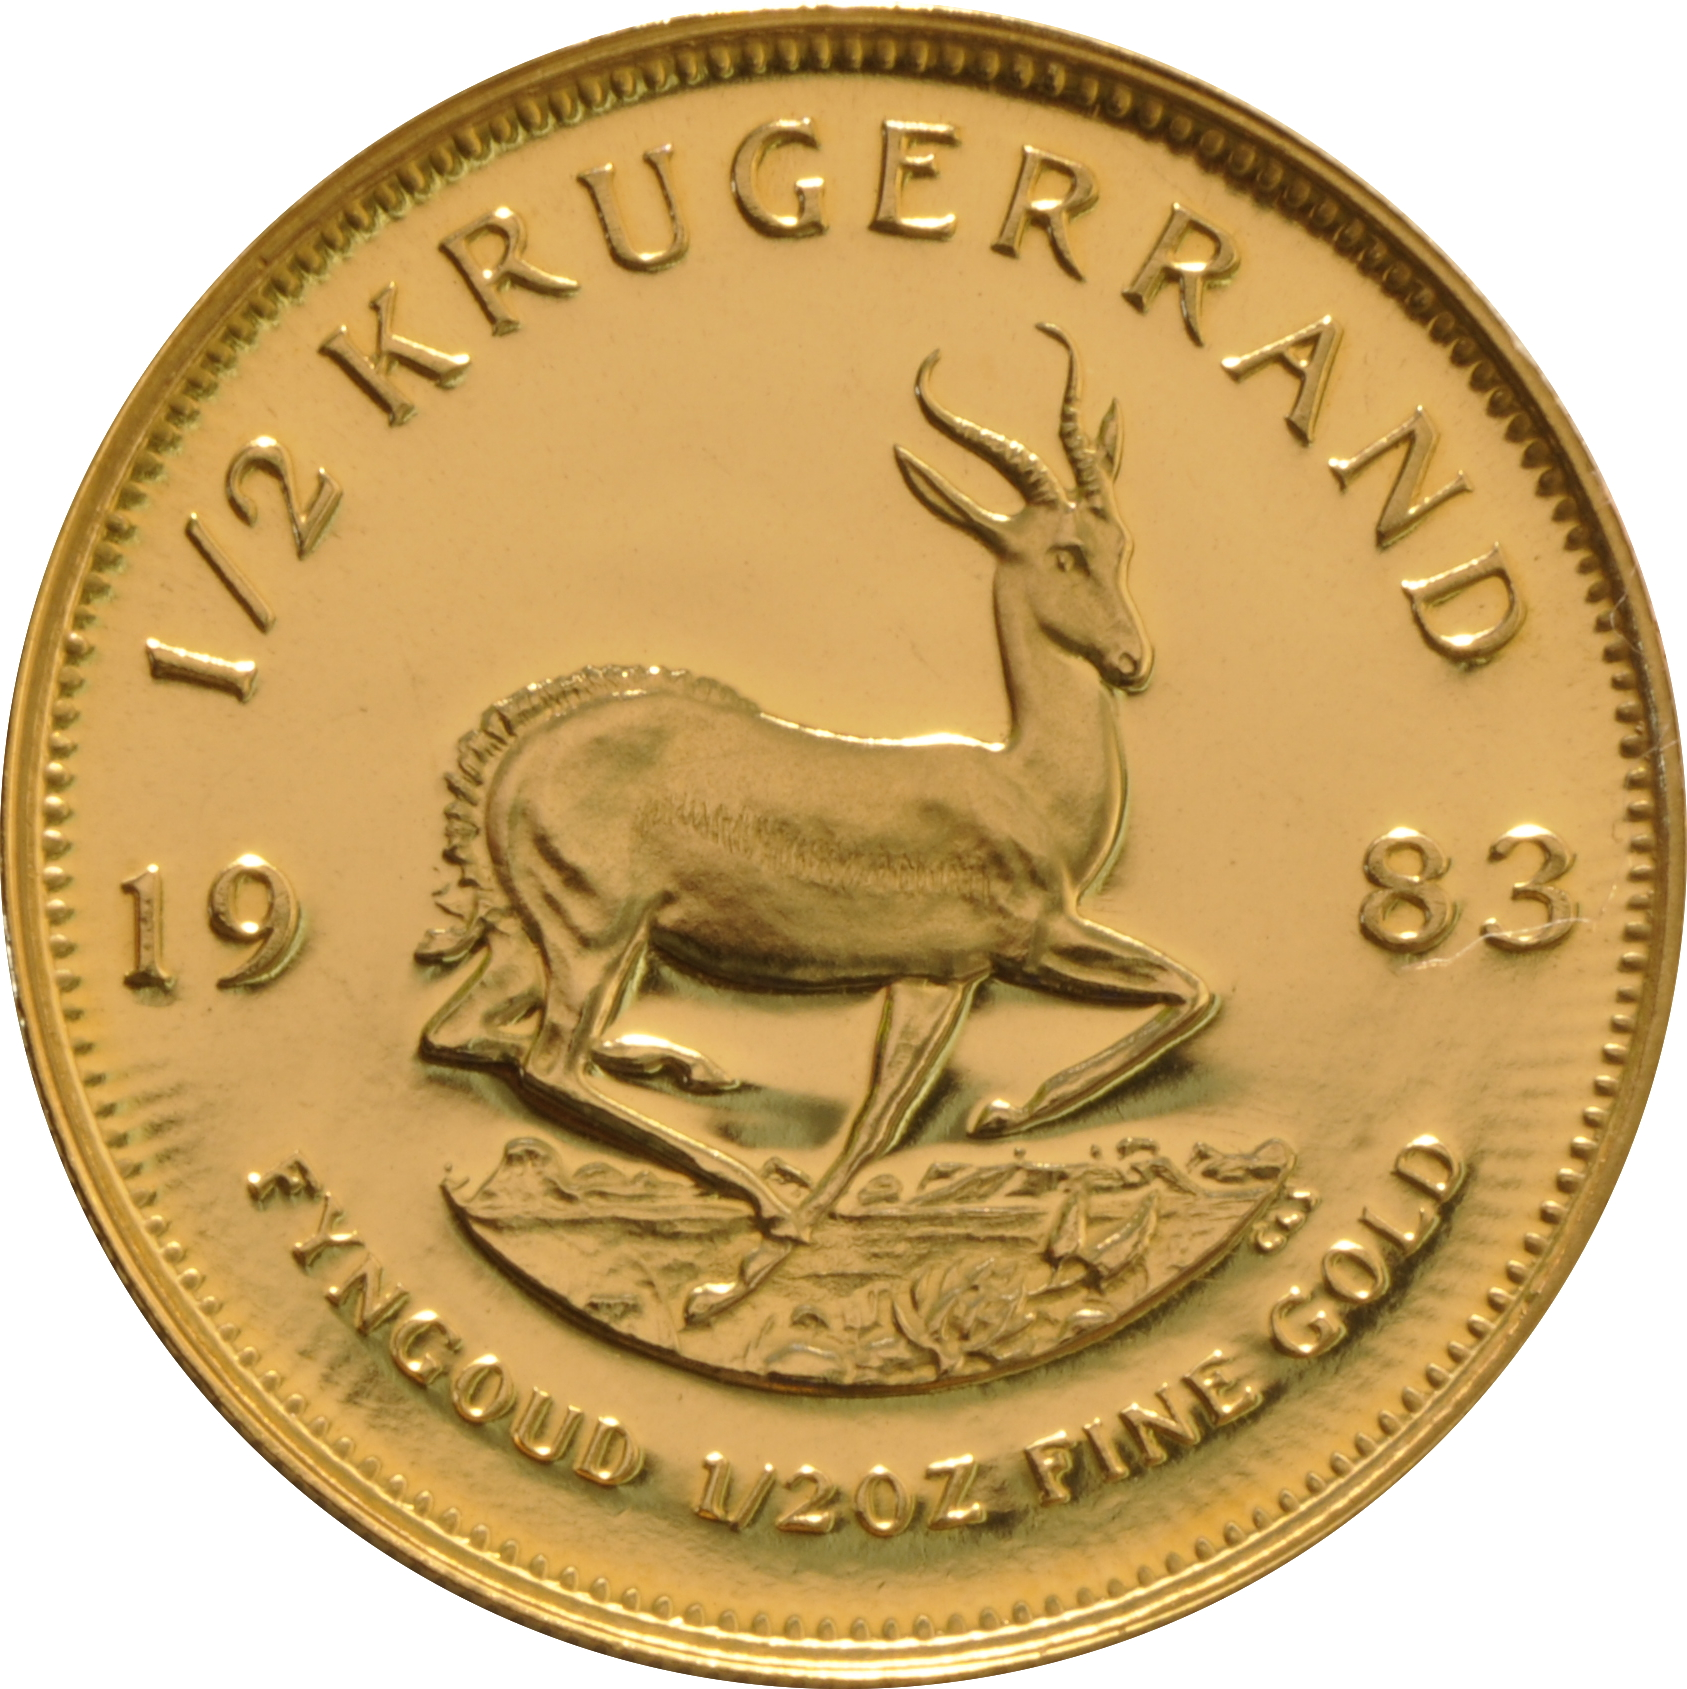 1983 Proof Half Ounce Krugerrand Gold Coin 163 596